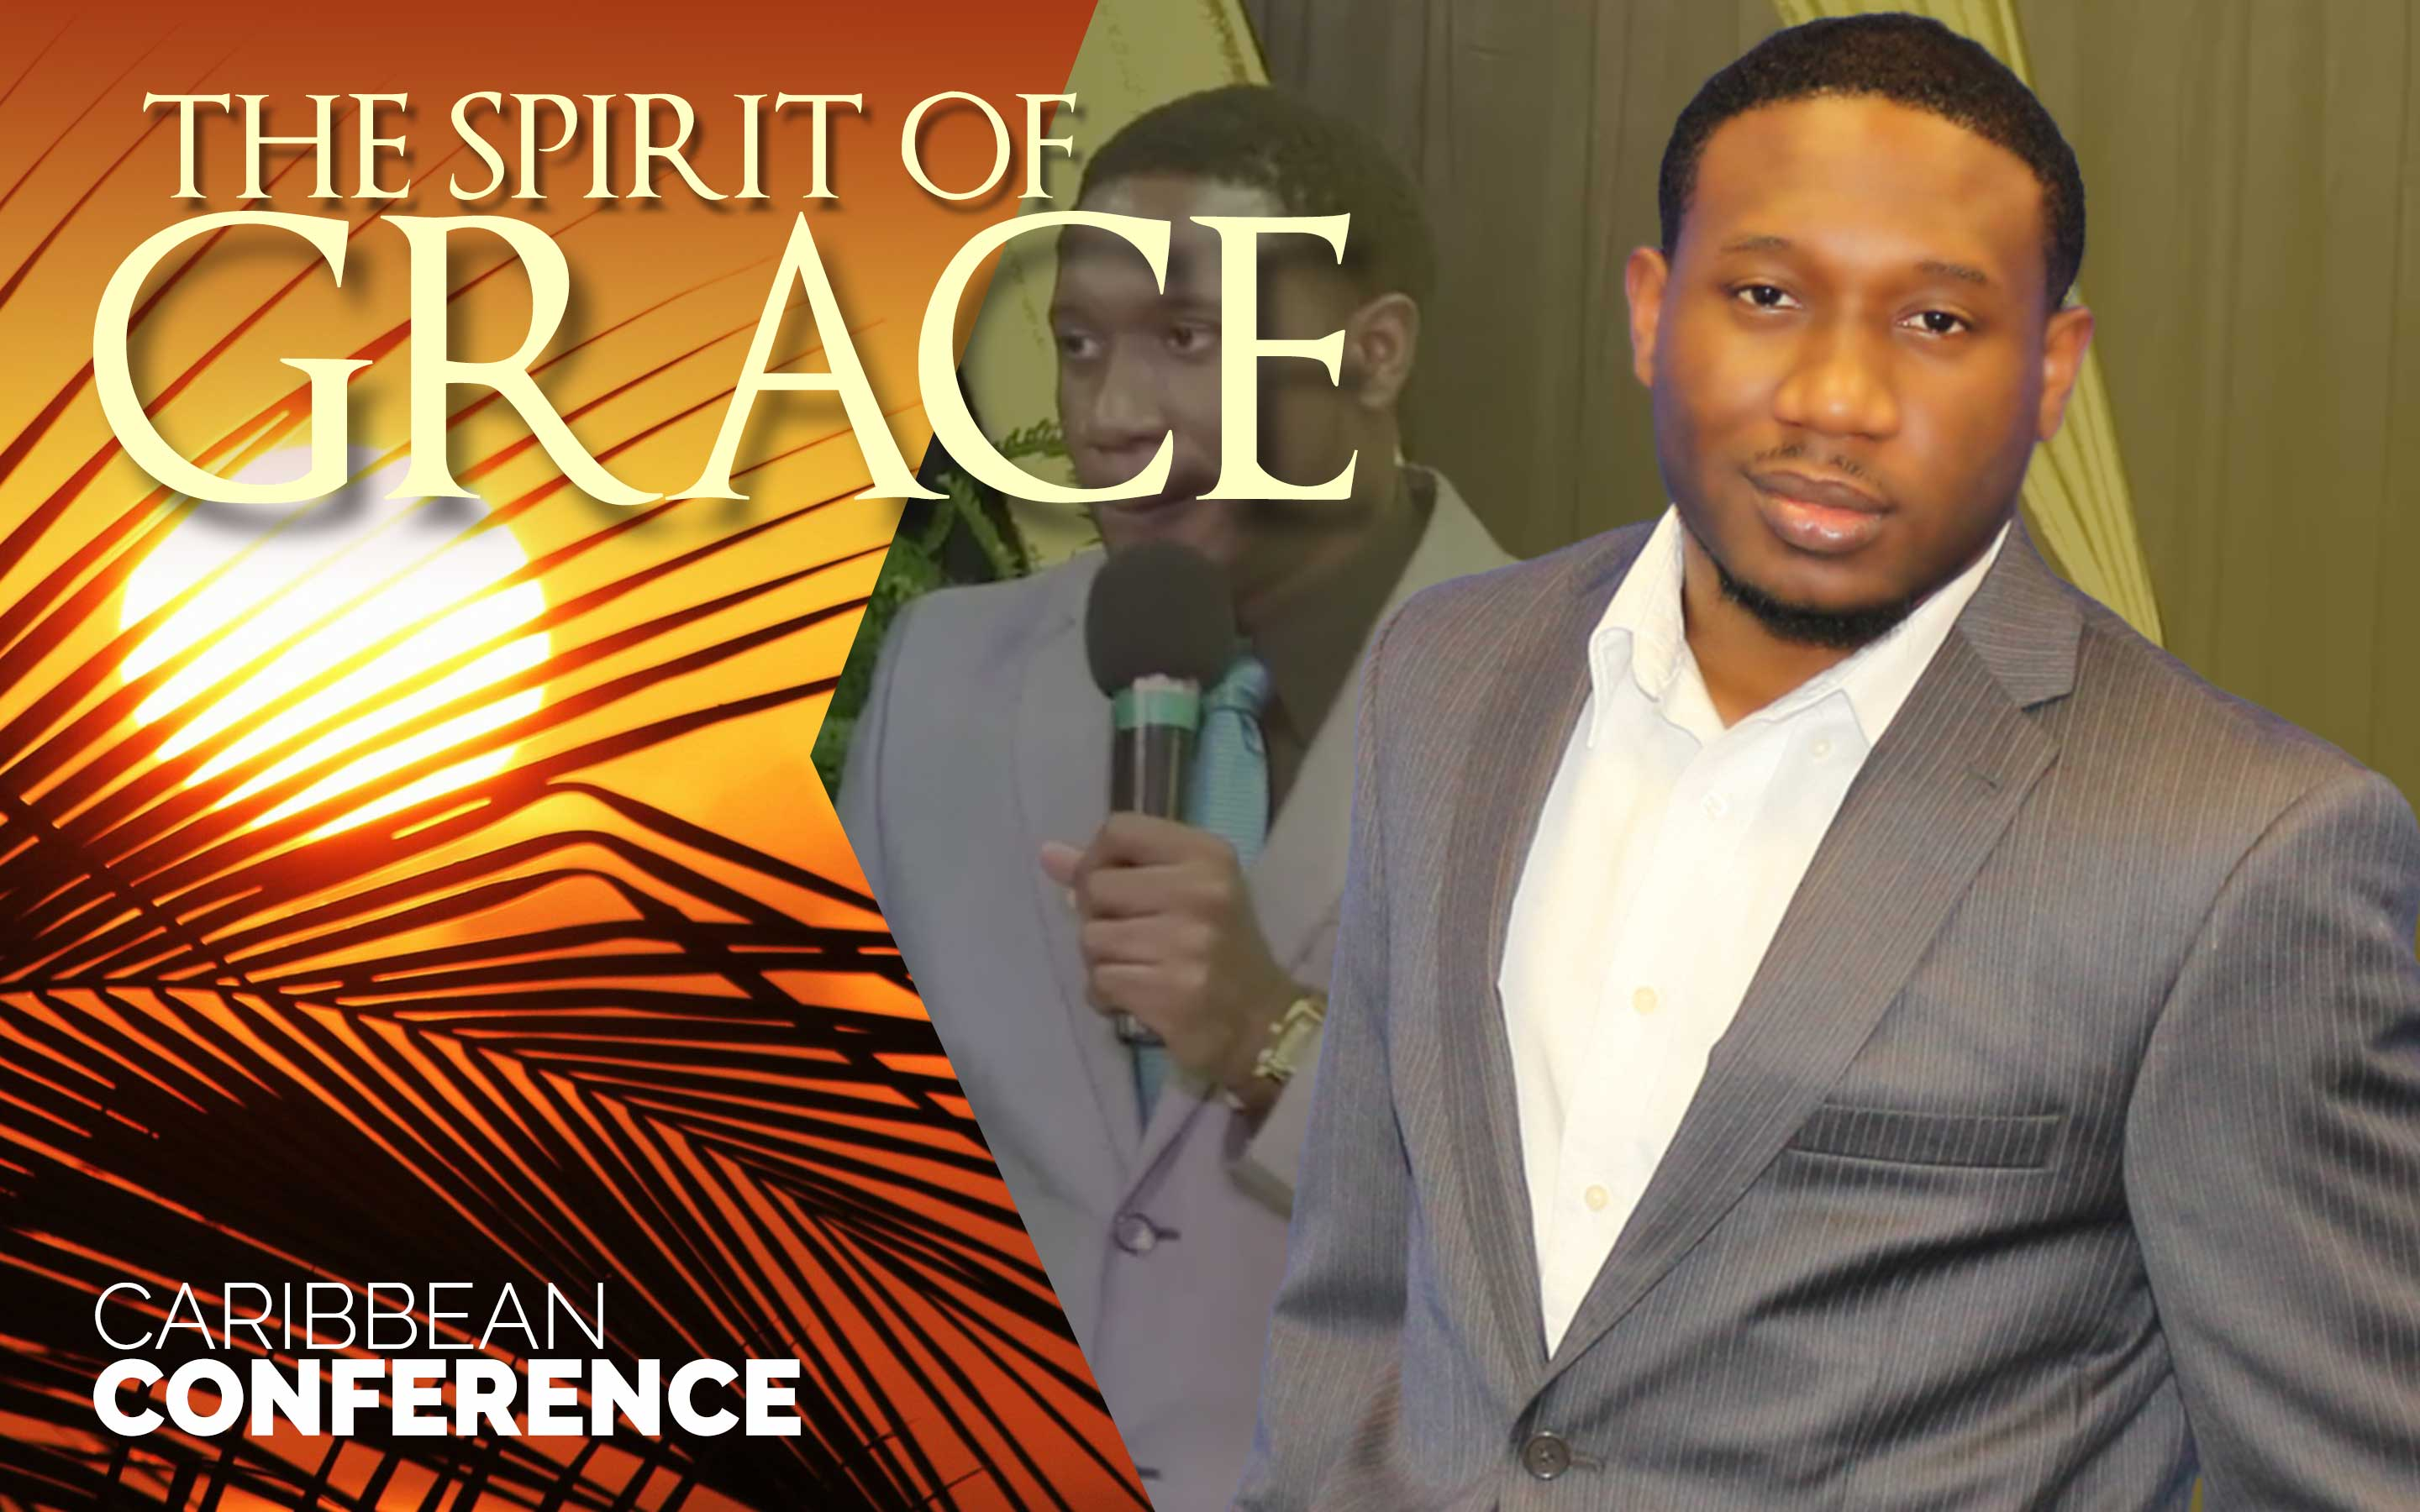 CC The Spirit of Grace